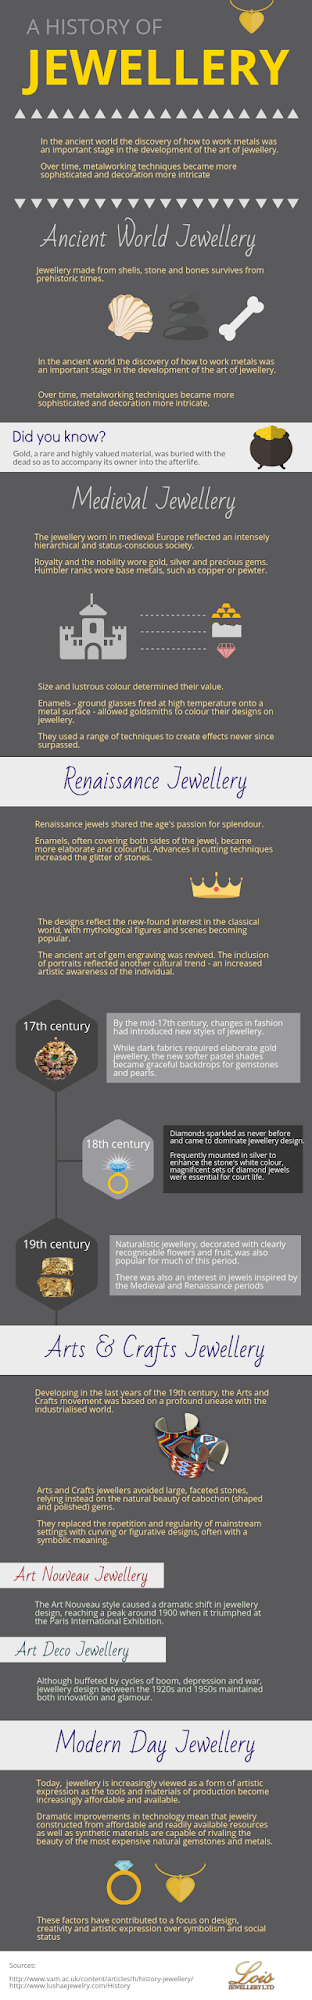 lois jewellery infographic - silver moss designs